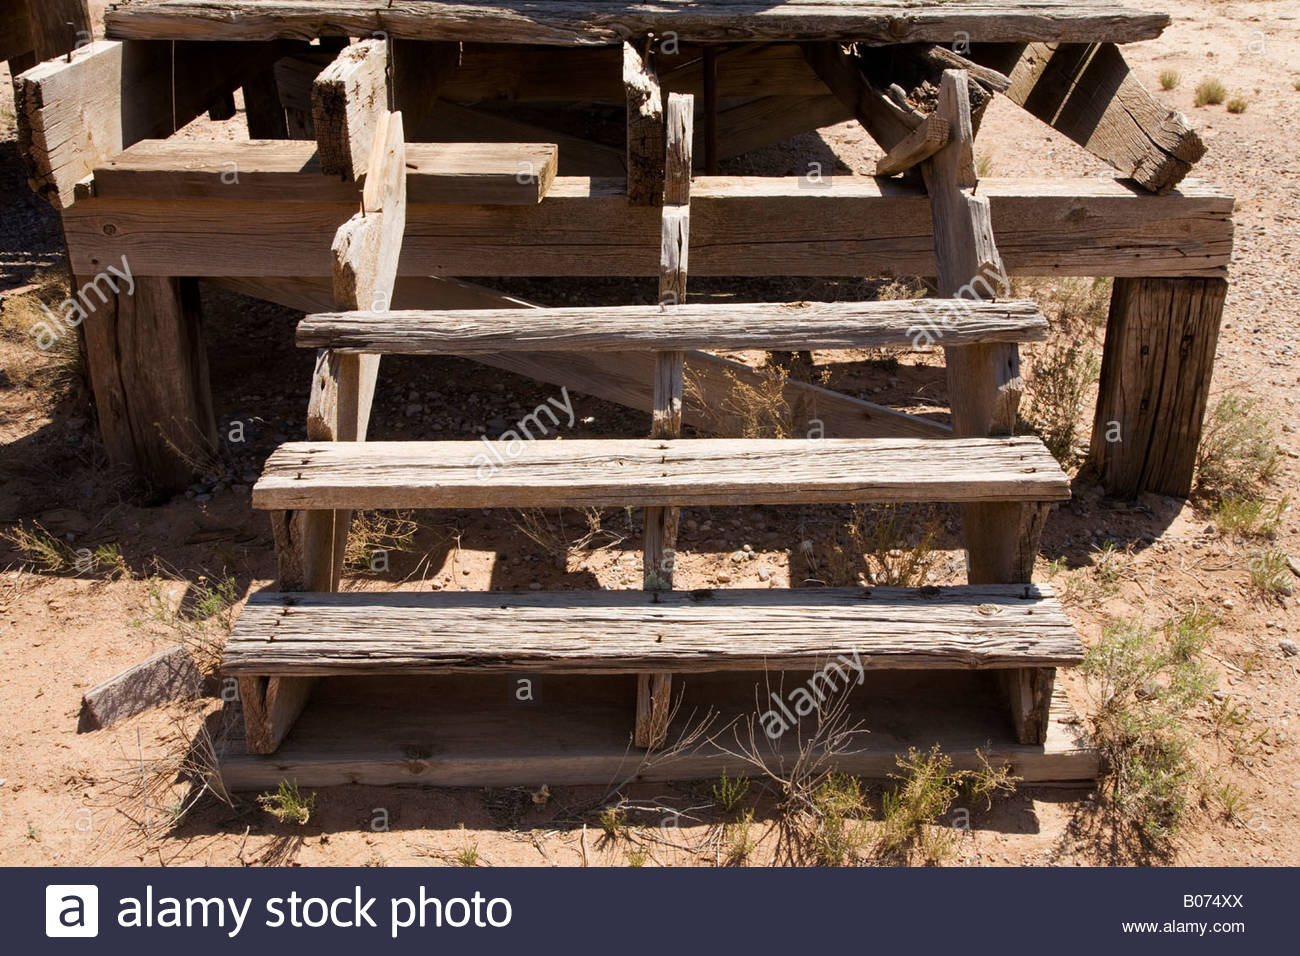 falling down stairs stockfotos falling down stairs bilder alamy. Black Bedroom Furniture Sets. Home Design Ideas